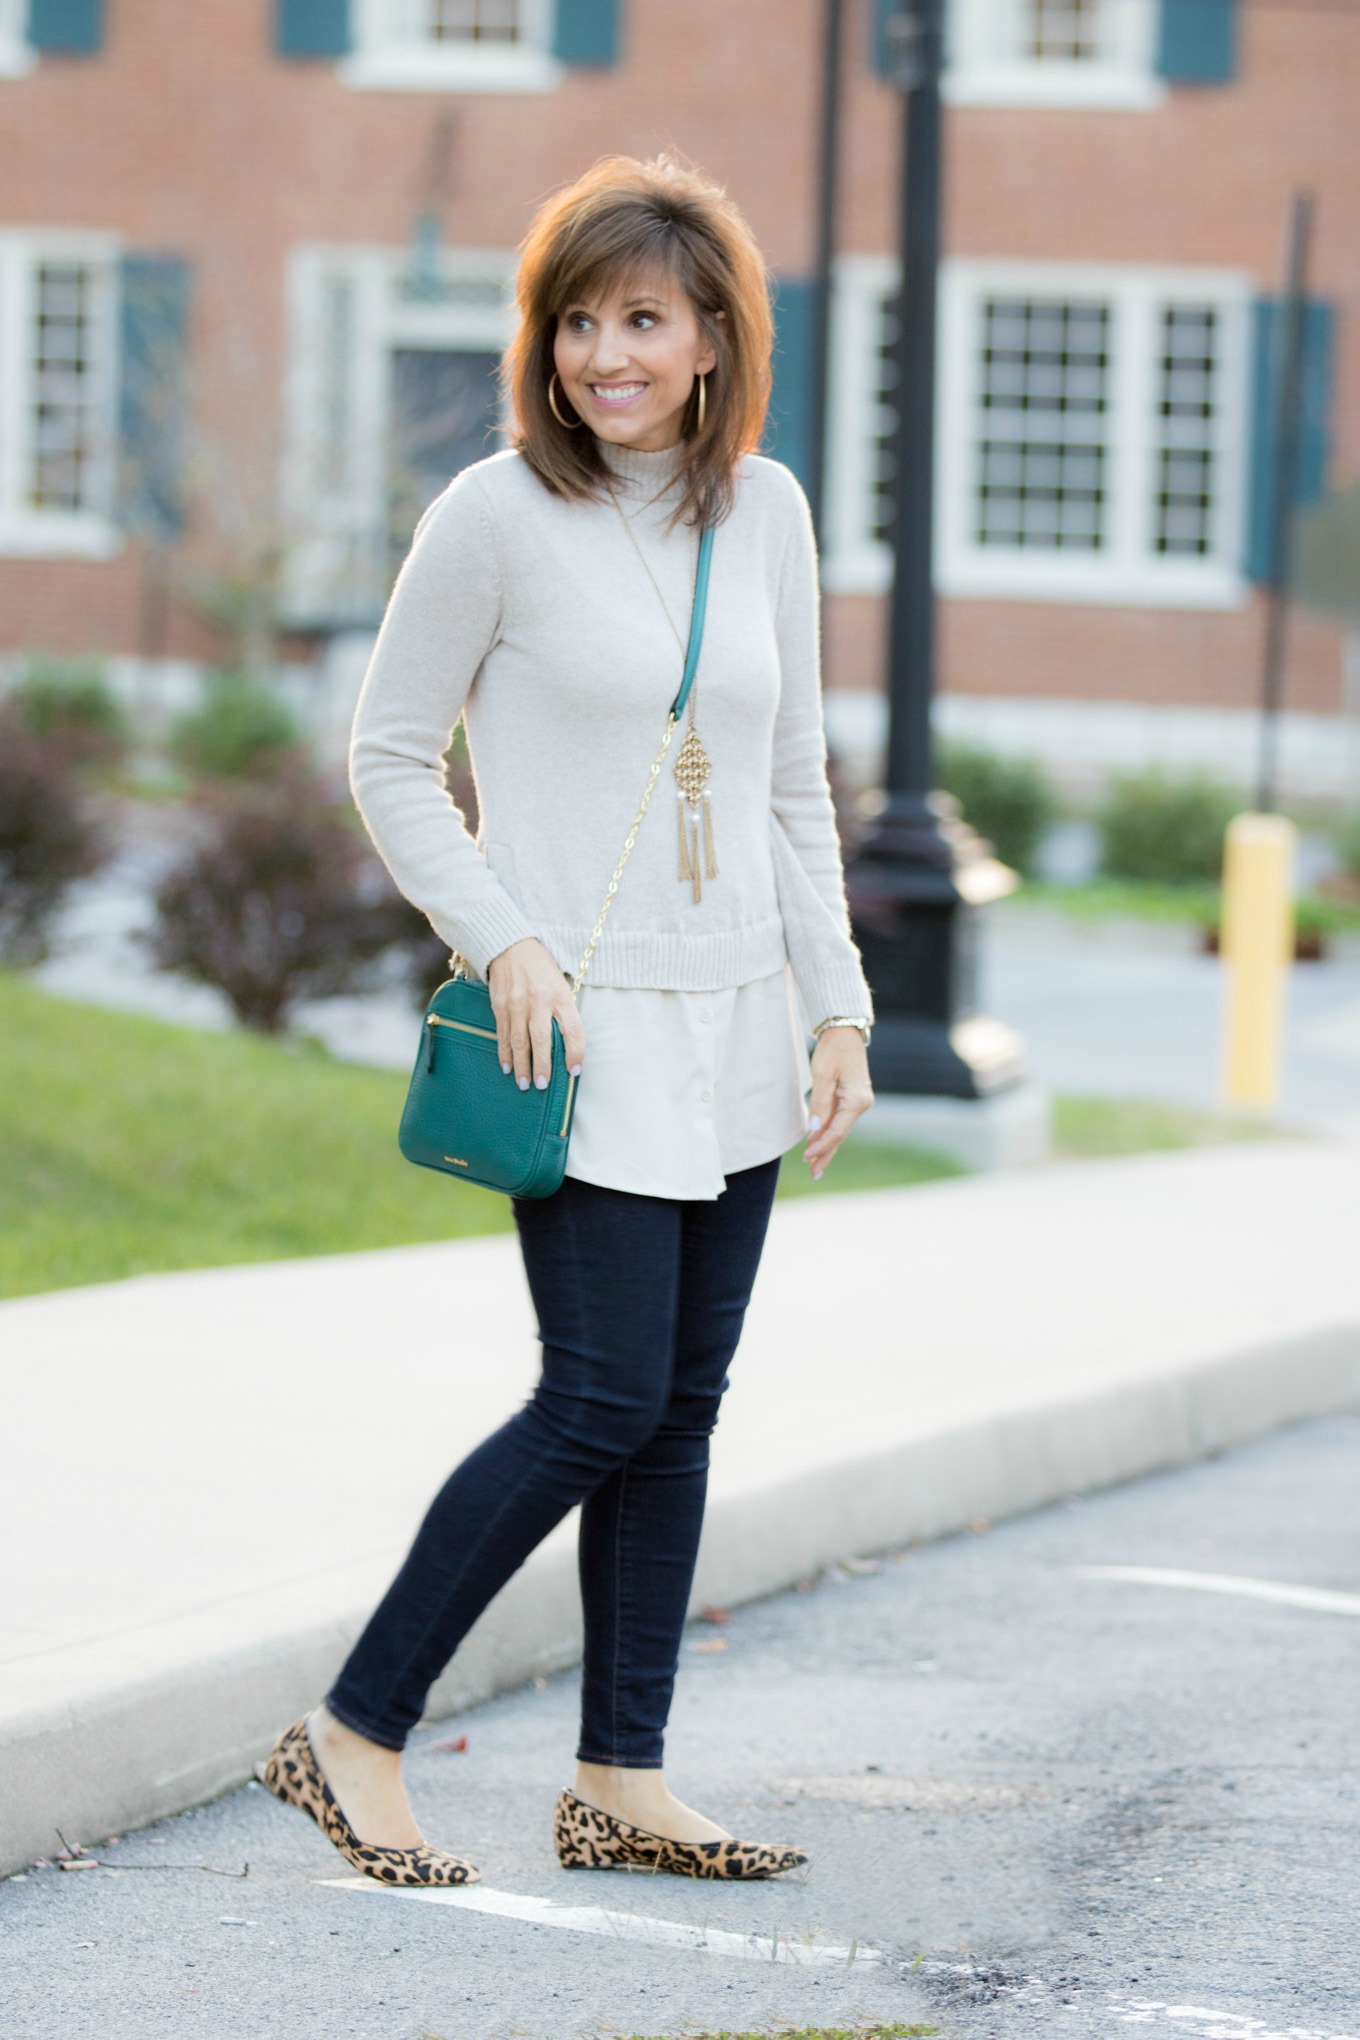 Fashion blogger, Cyndi Spivey, styling a Vera Bradley bag from Macy's.